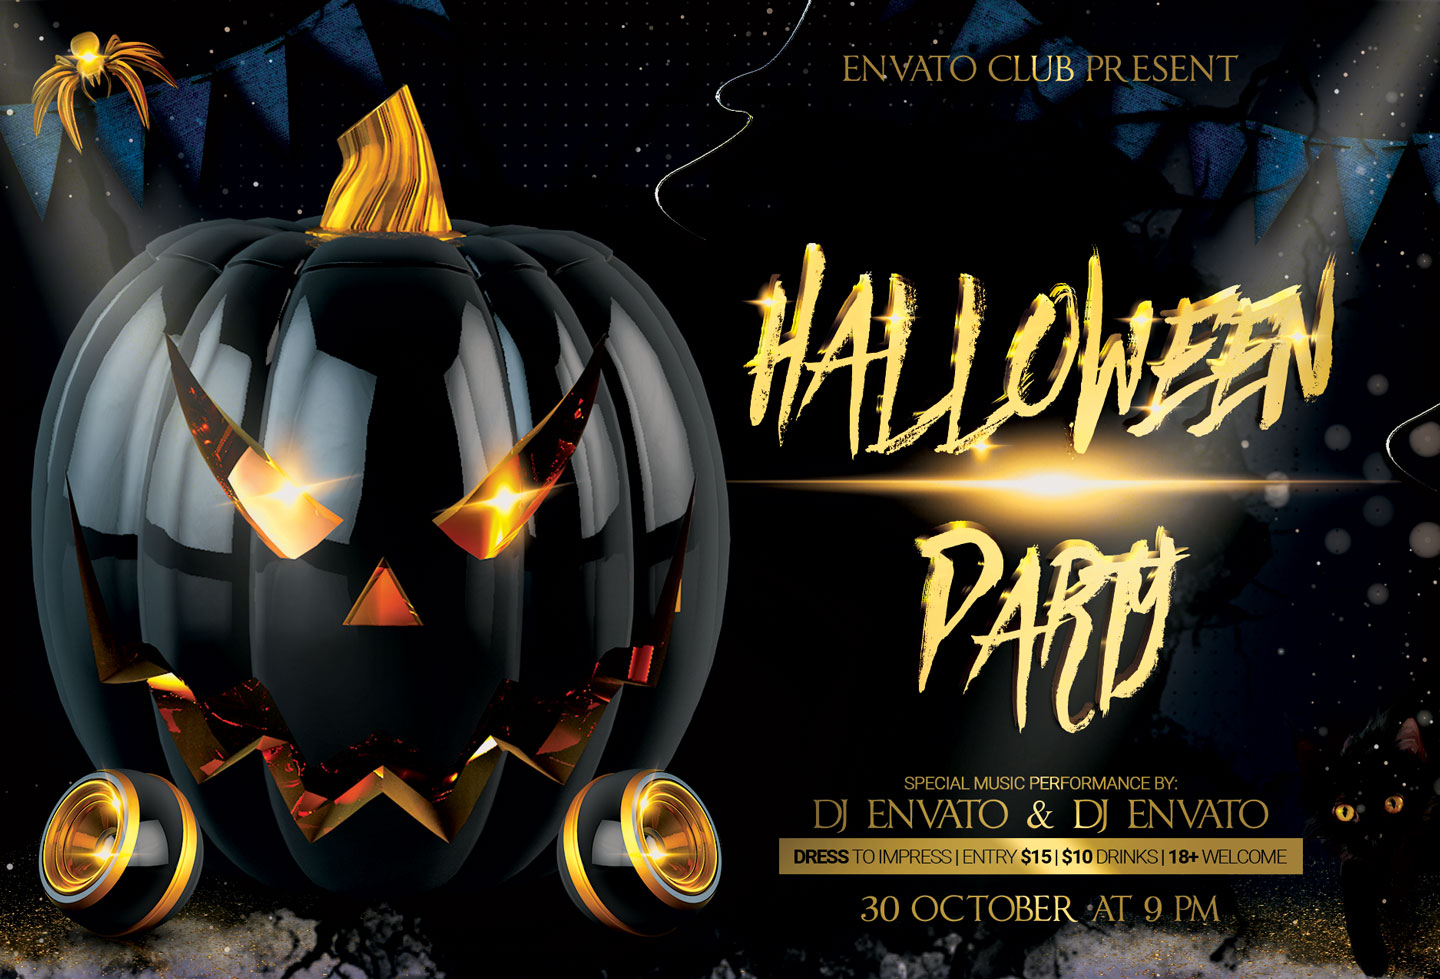 Halloween Flyer example image 3